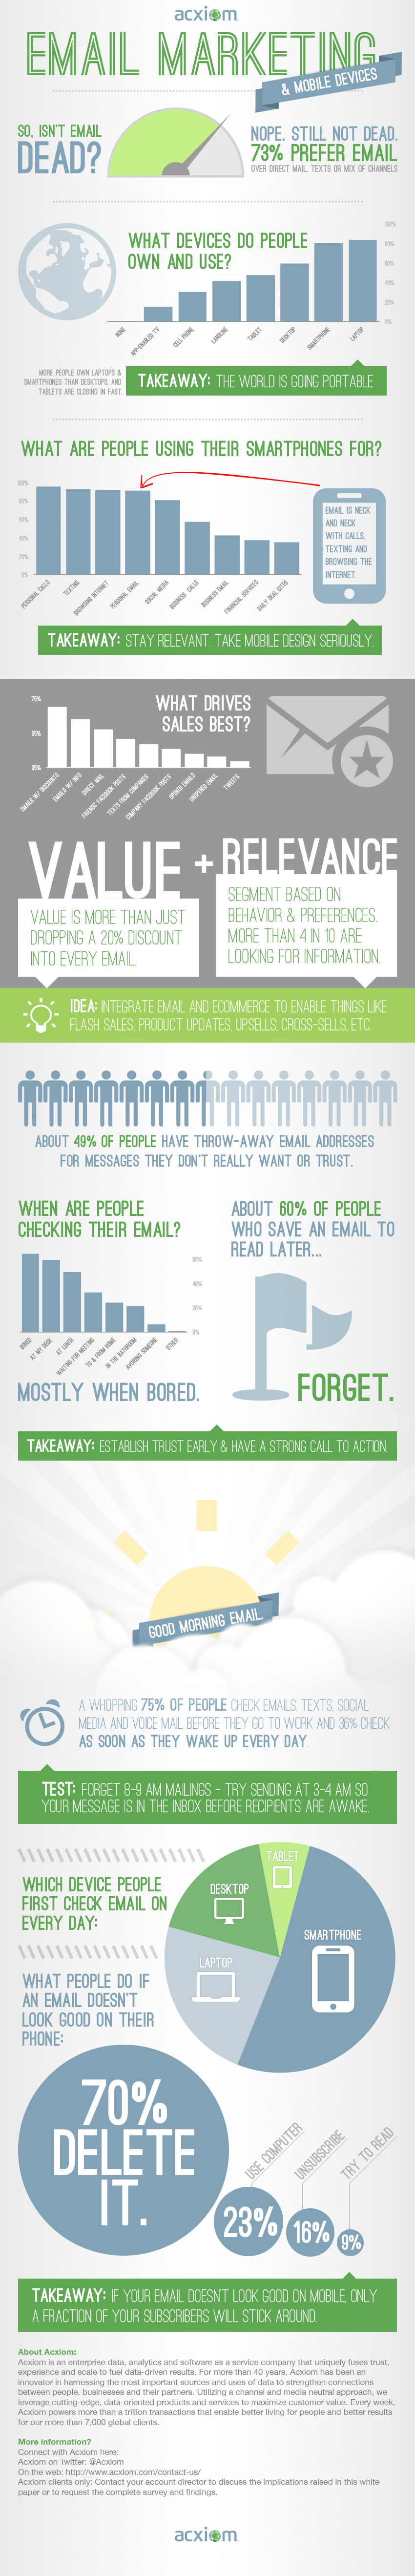 Key Findings- Email-Mobile Survey Infographic